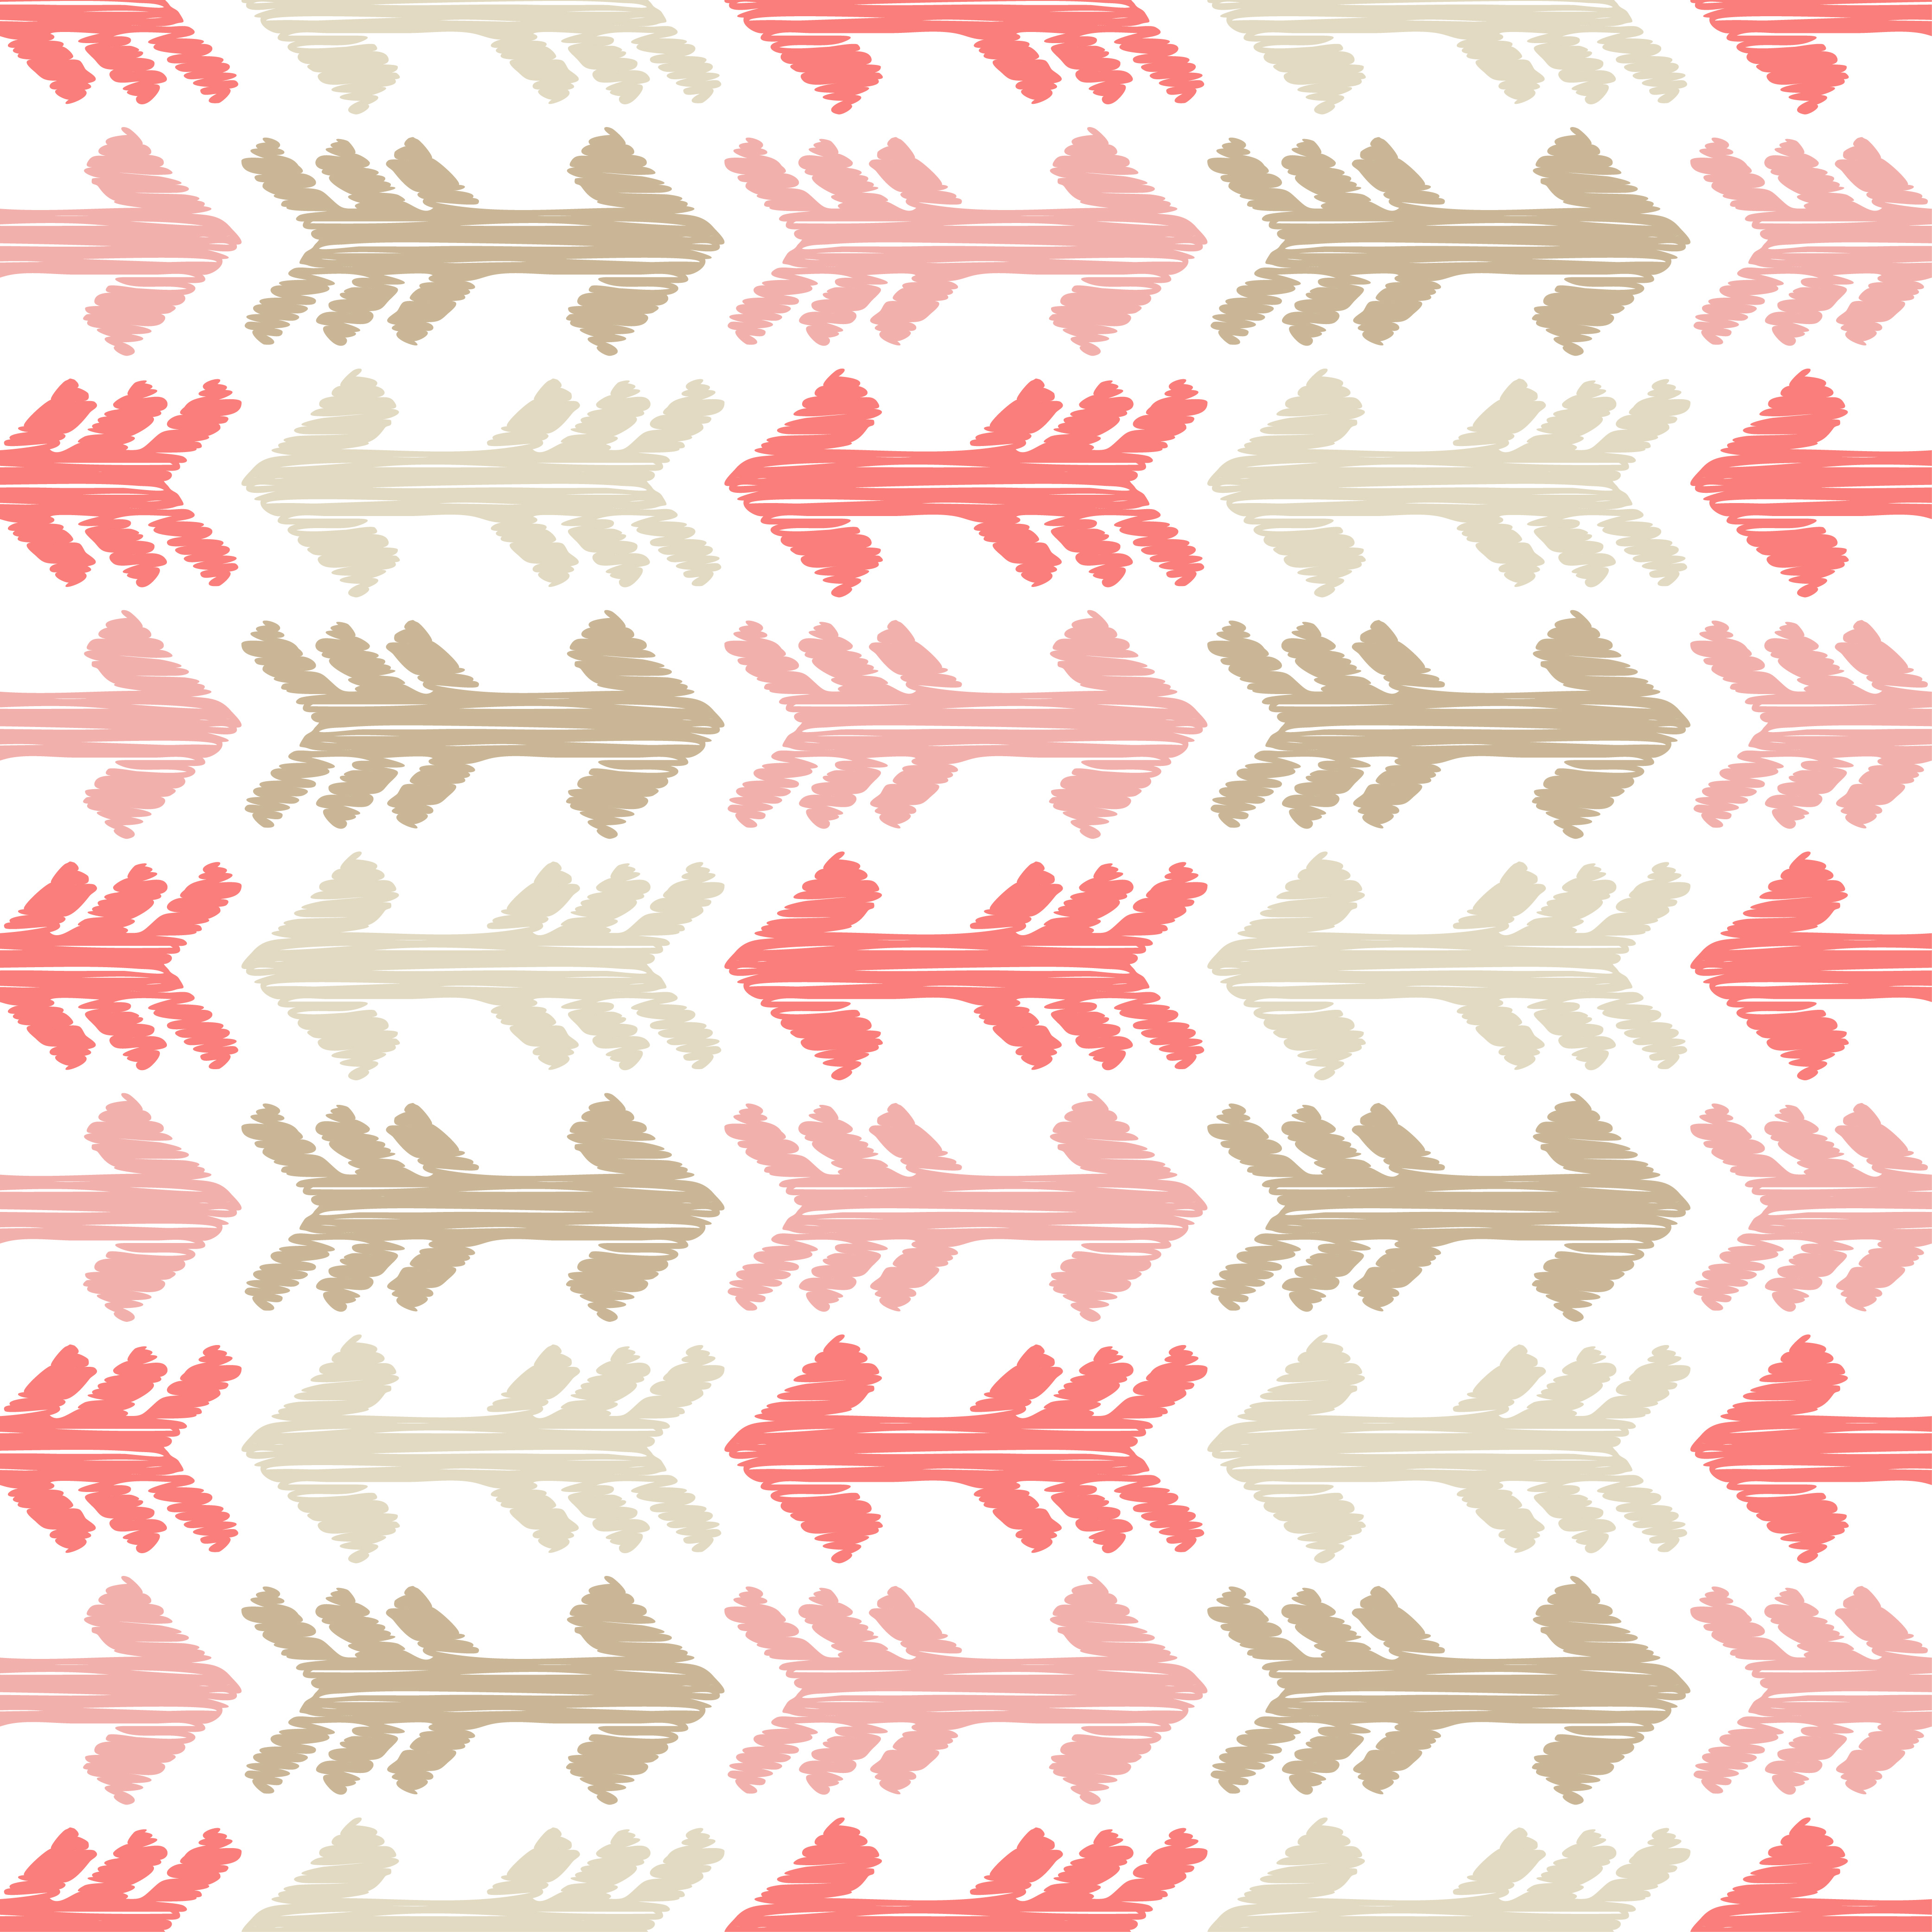 6 Ethnic boho seamless pattern. Arrows scribble texture.  example image 7